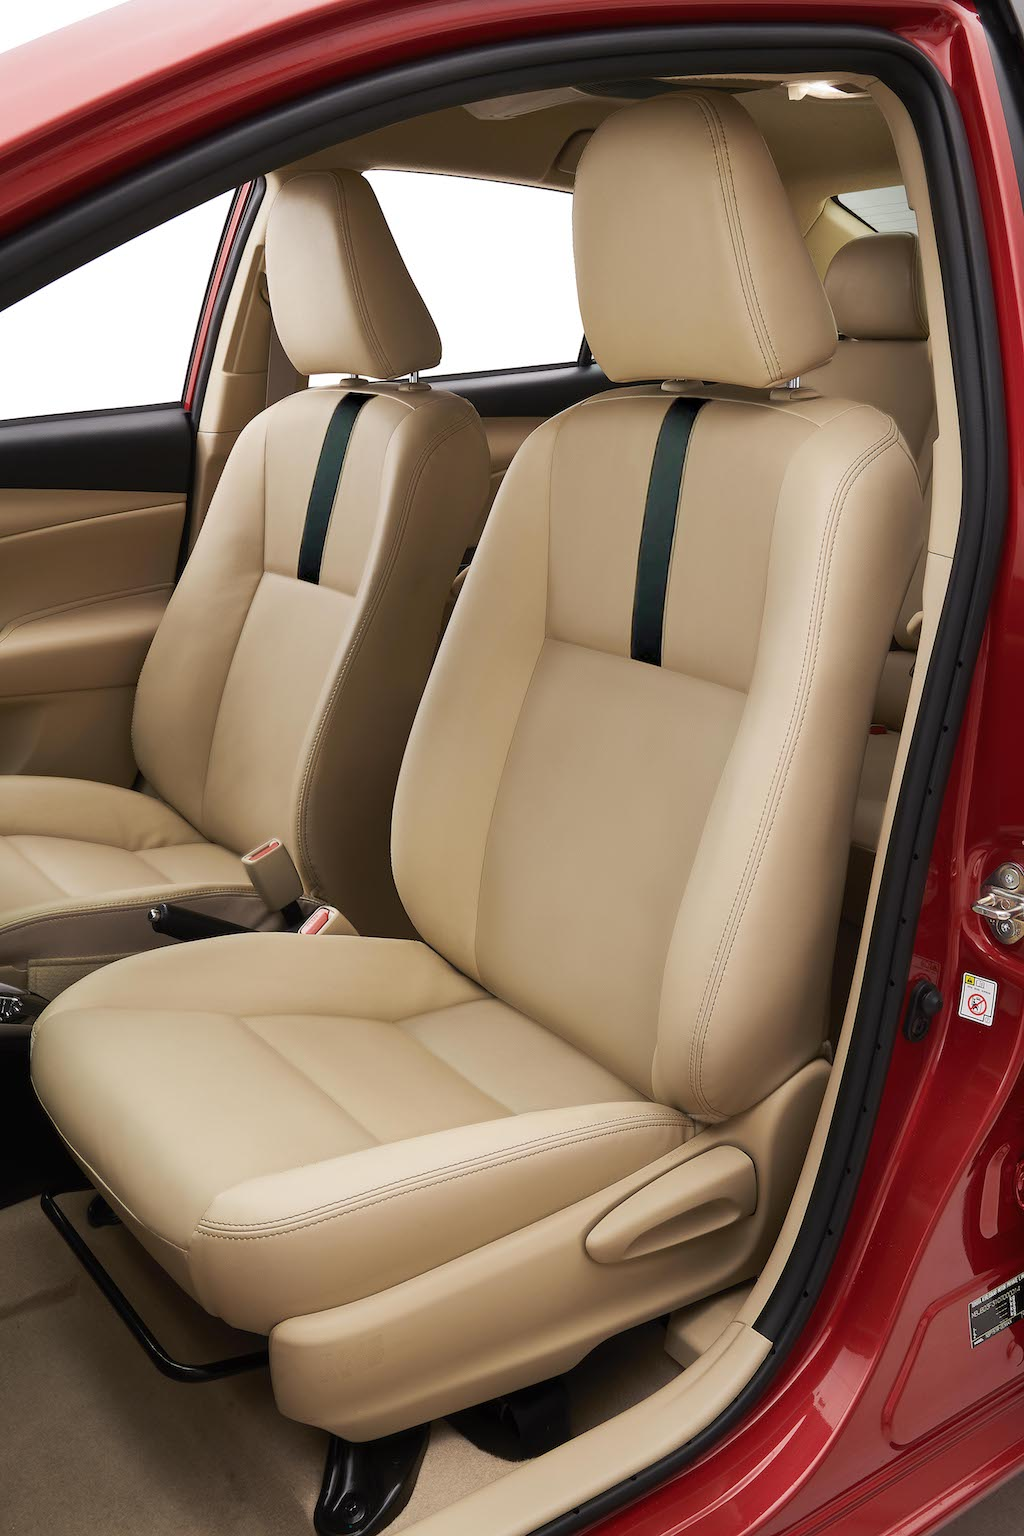 Toyota Yaris Leatherette Seats